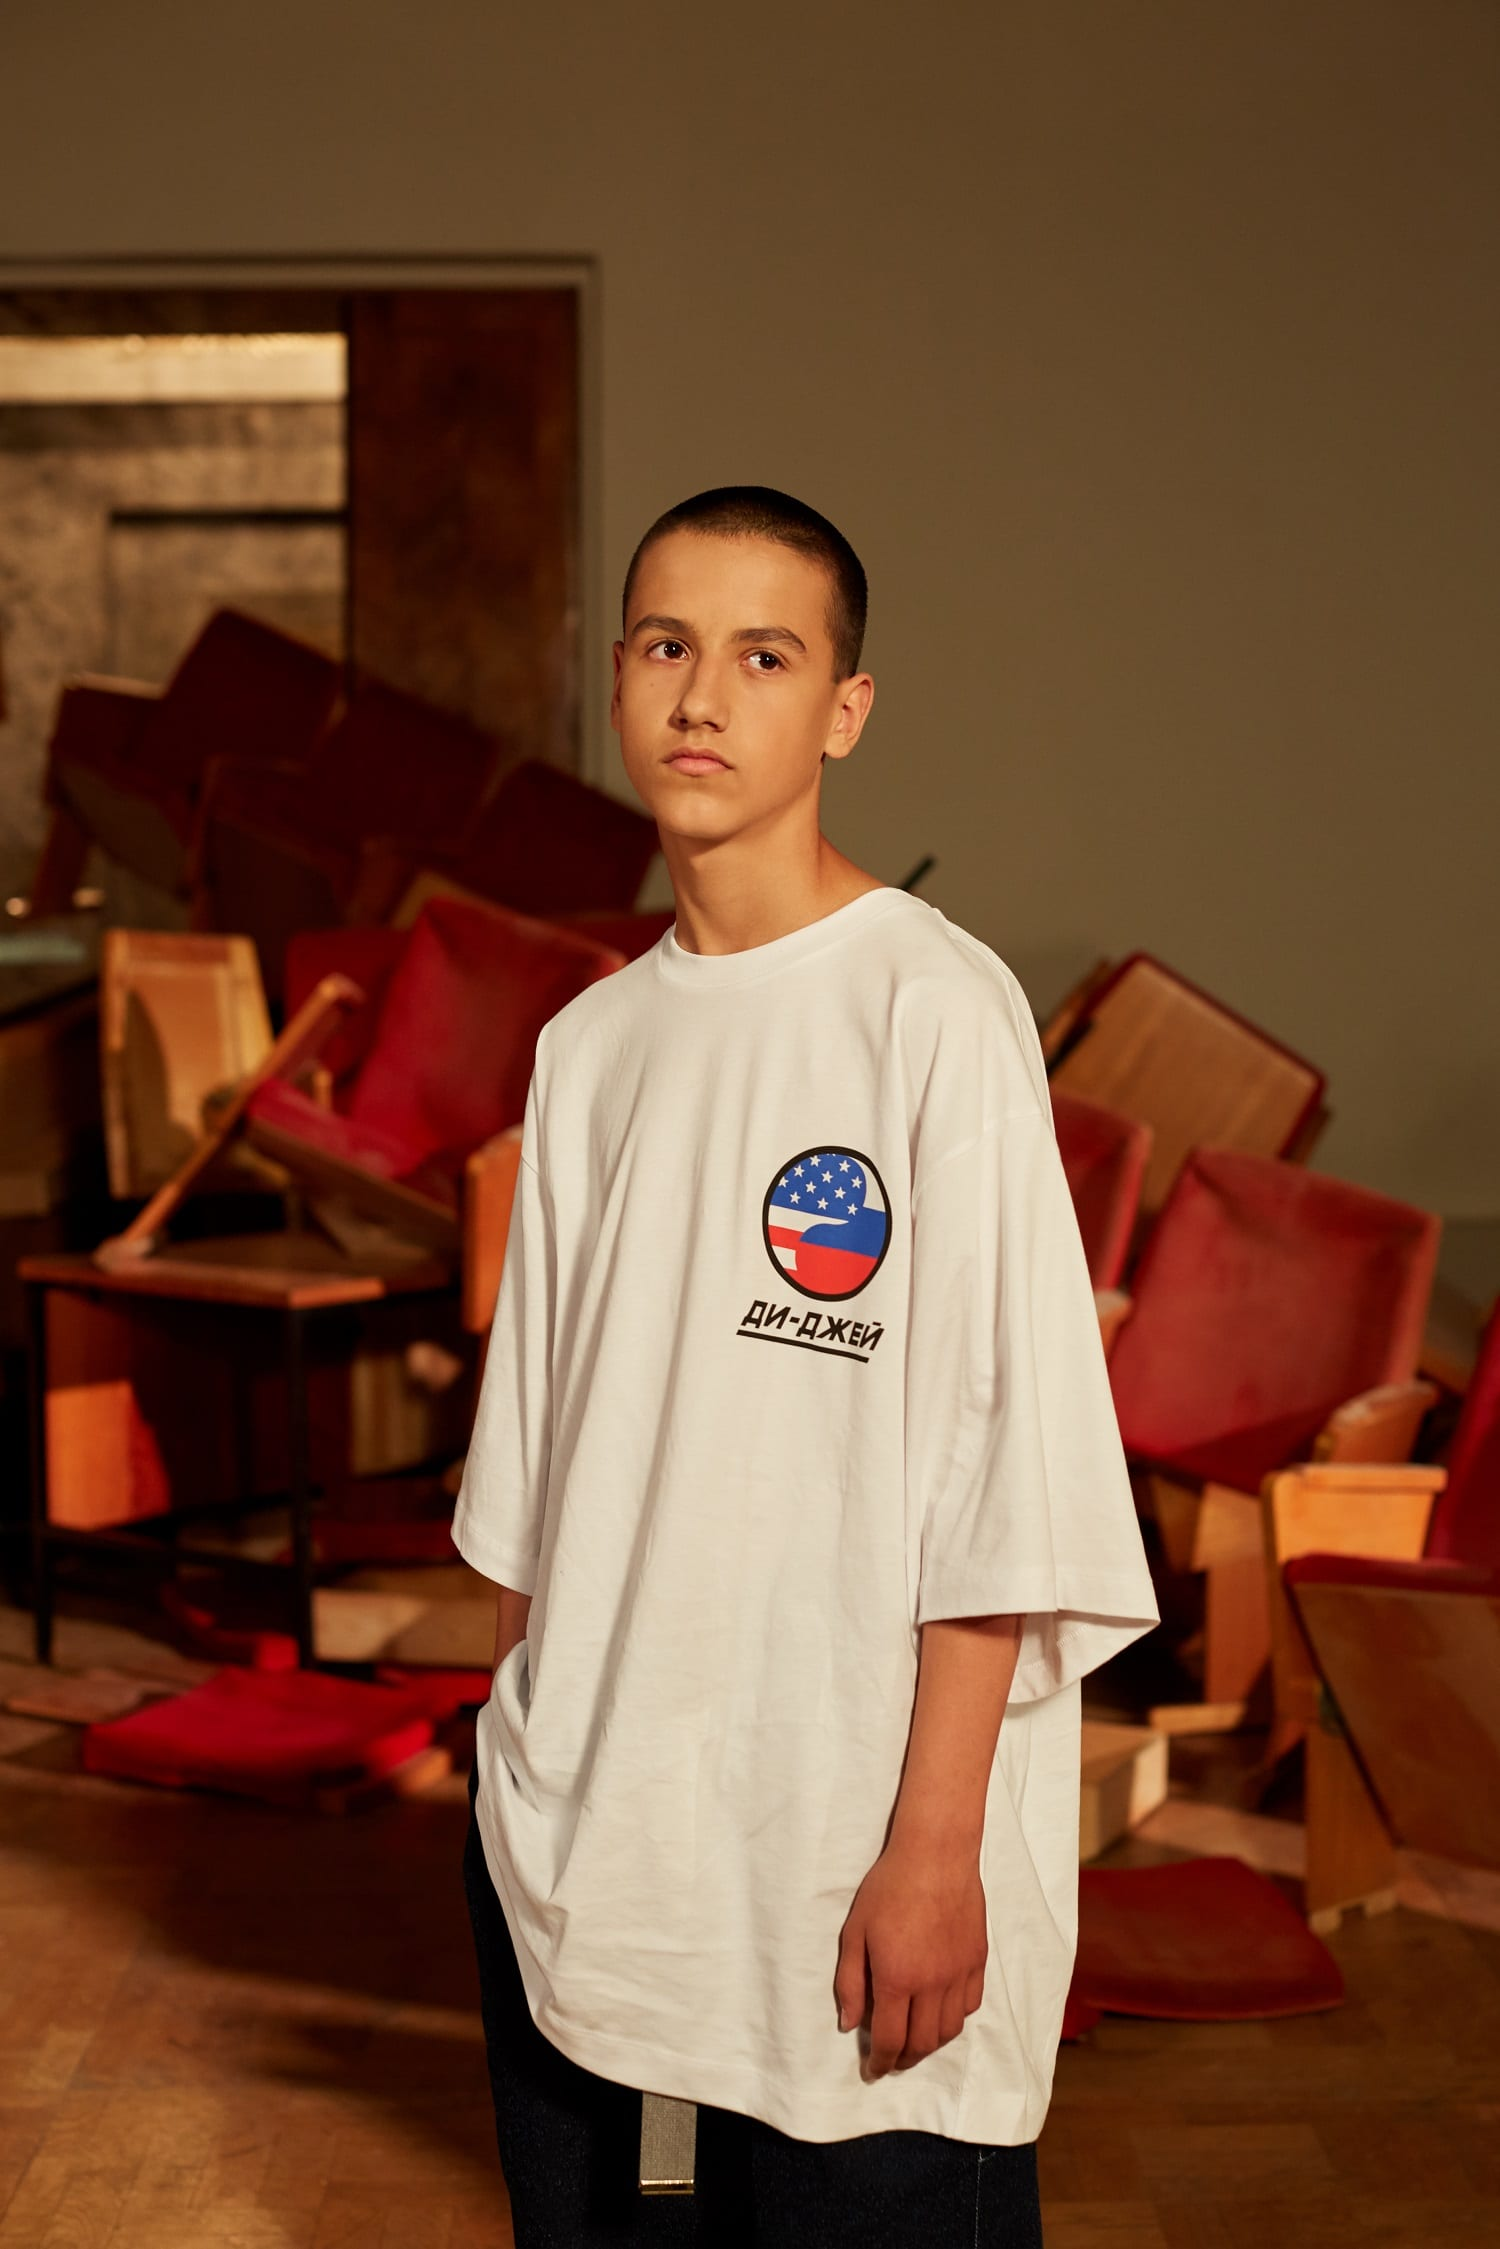 cc1ada5f9d3ff Gosha Rubchinskiy SS18 Drop 3 will be available on Wednesday 28th of March